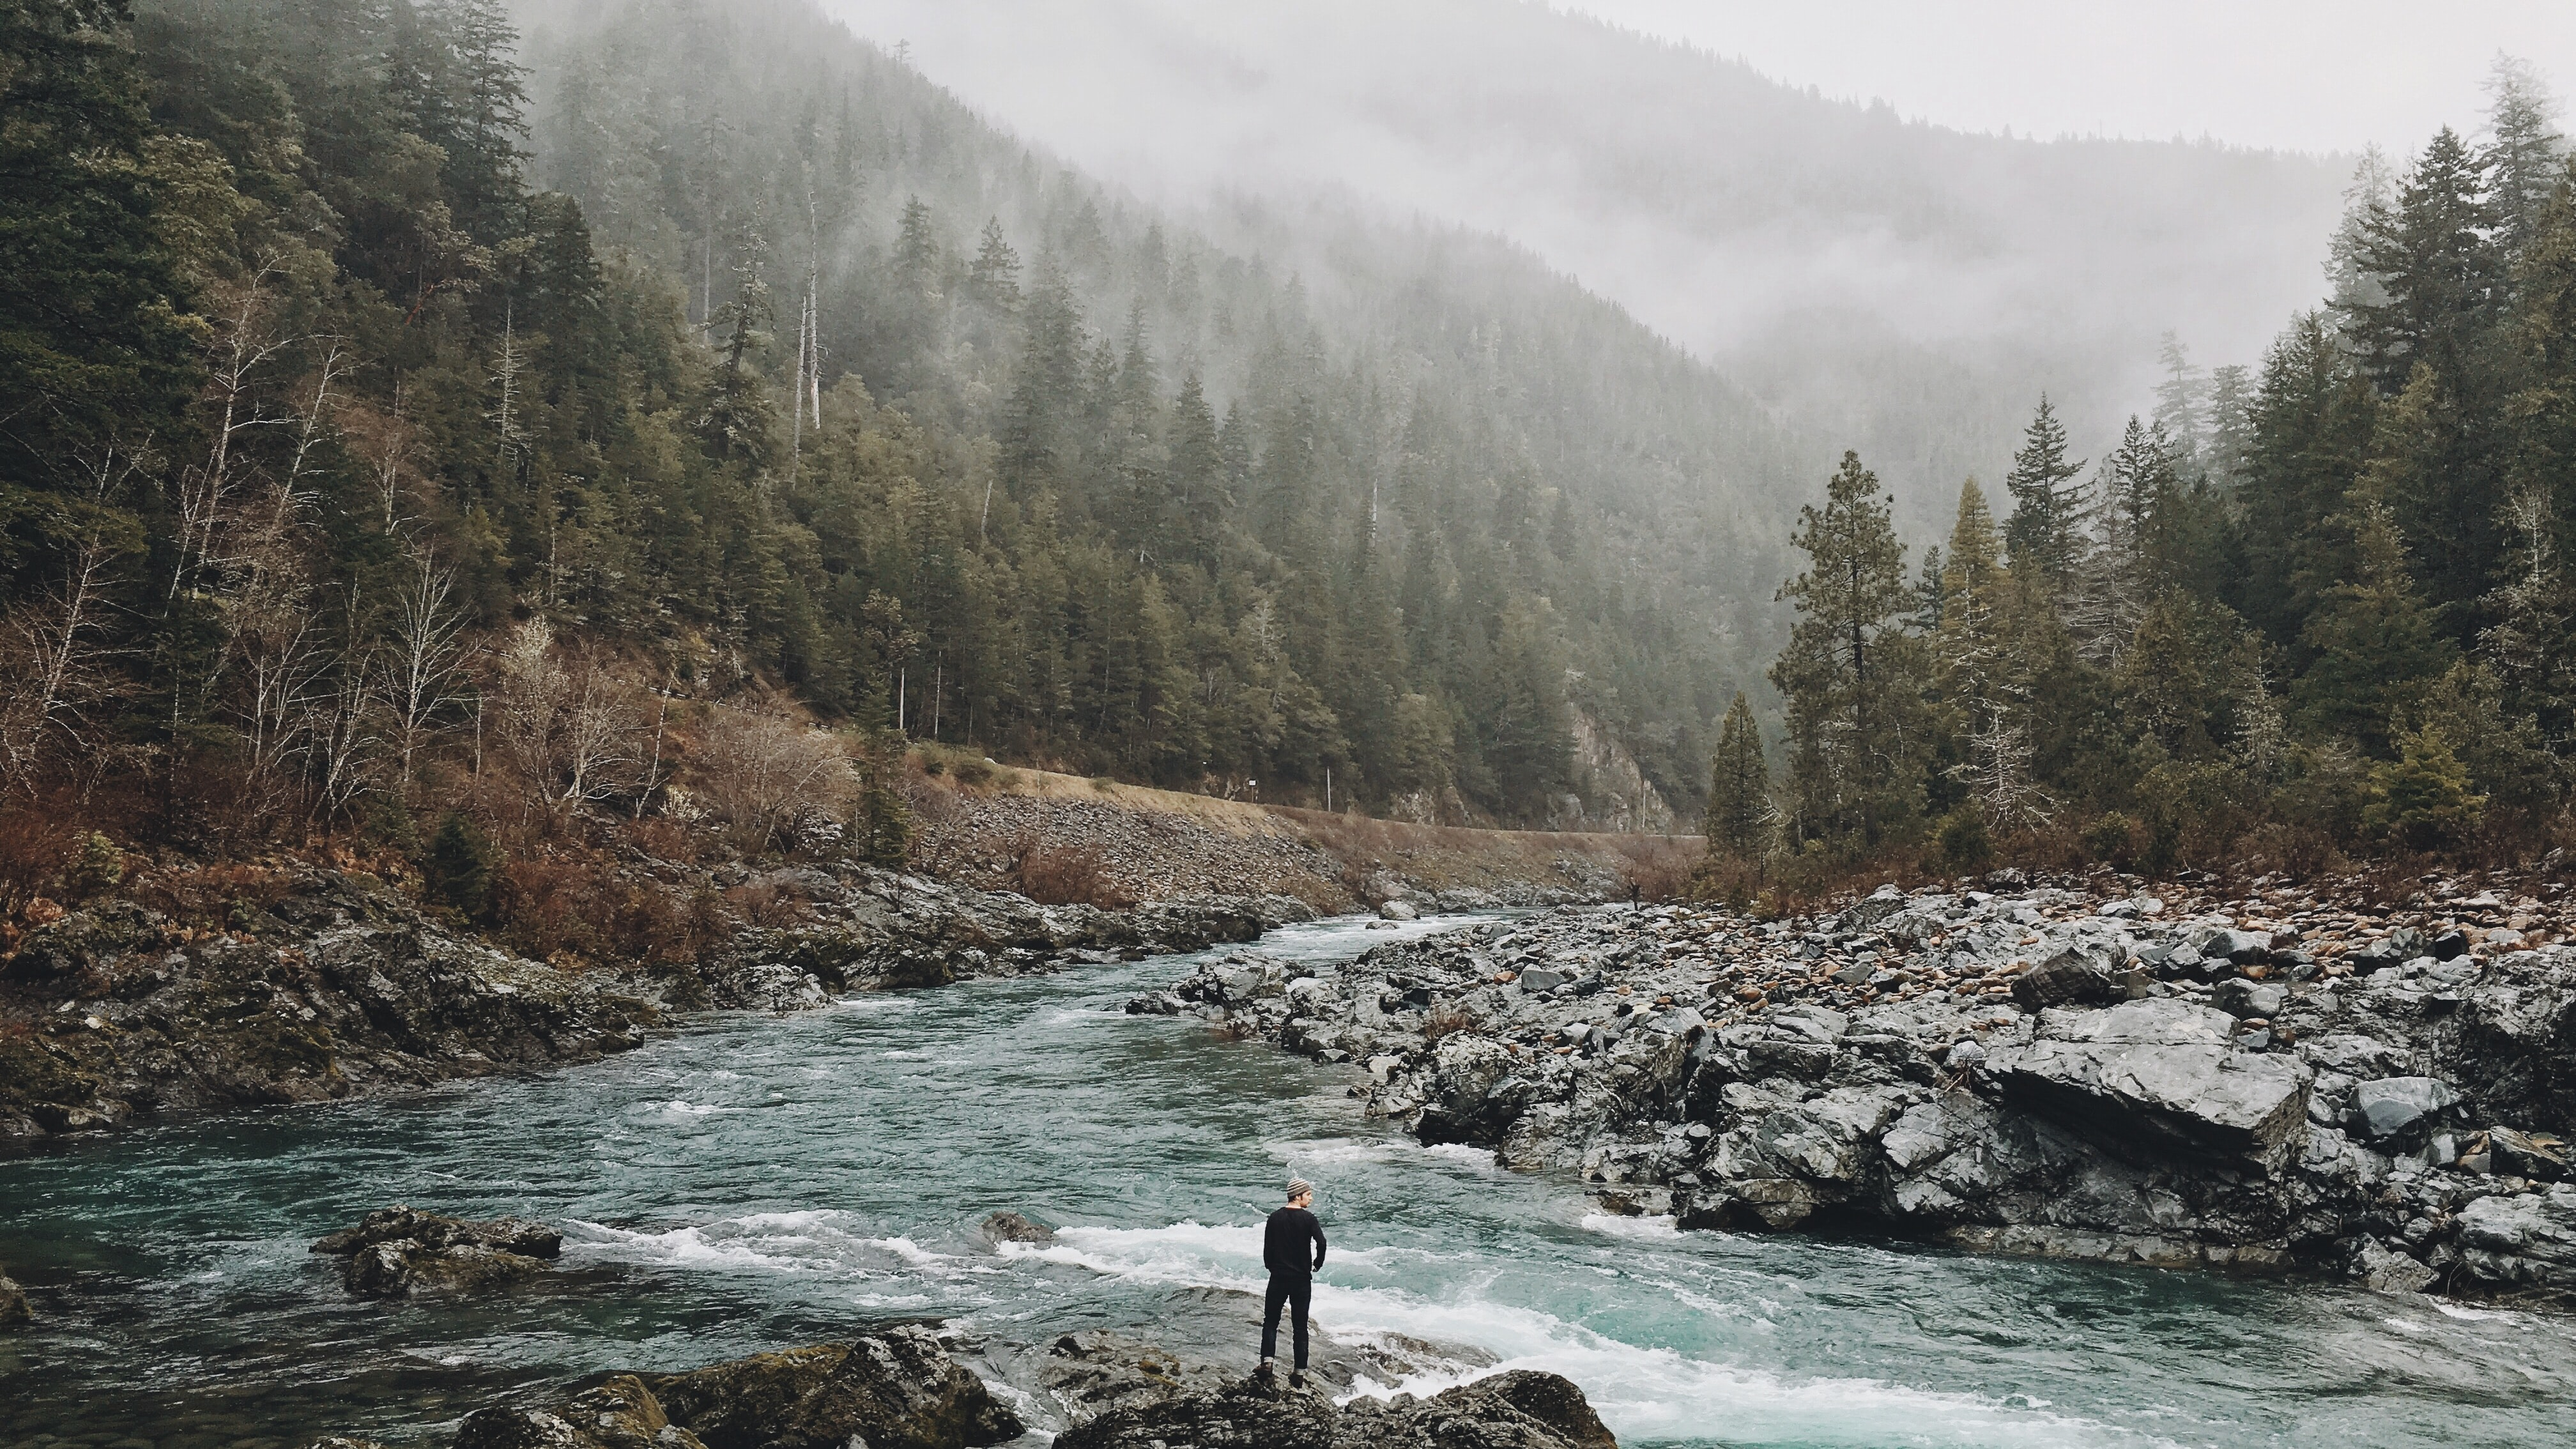 A man standing on jagged rocks in a fast-flowing river in the wilderness